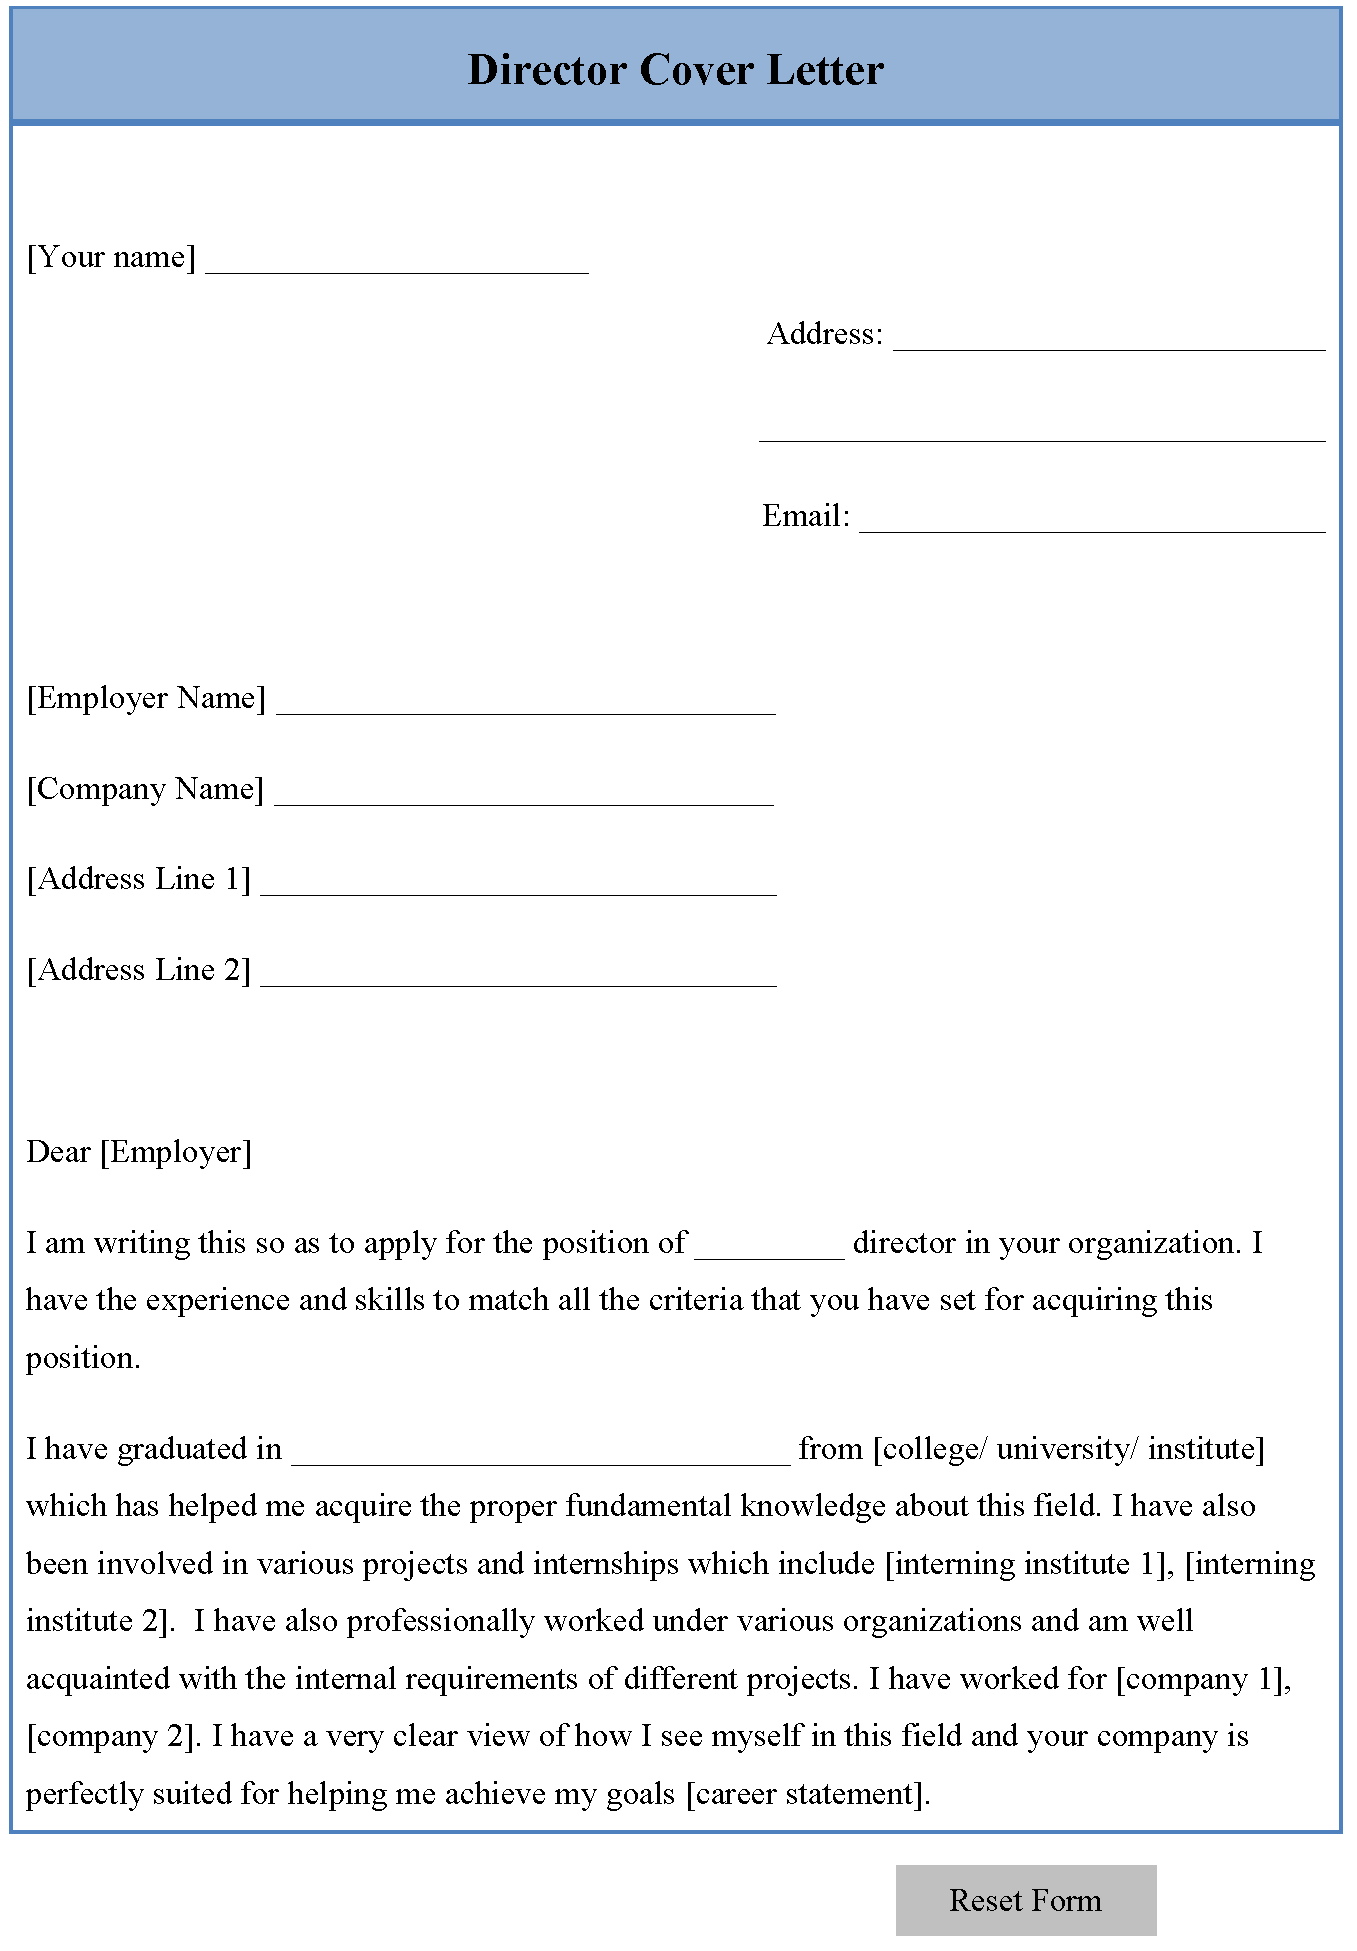 creating an editable pdf form in word